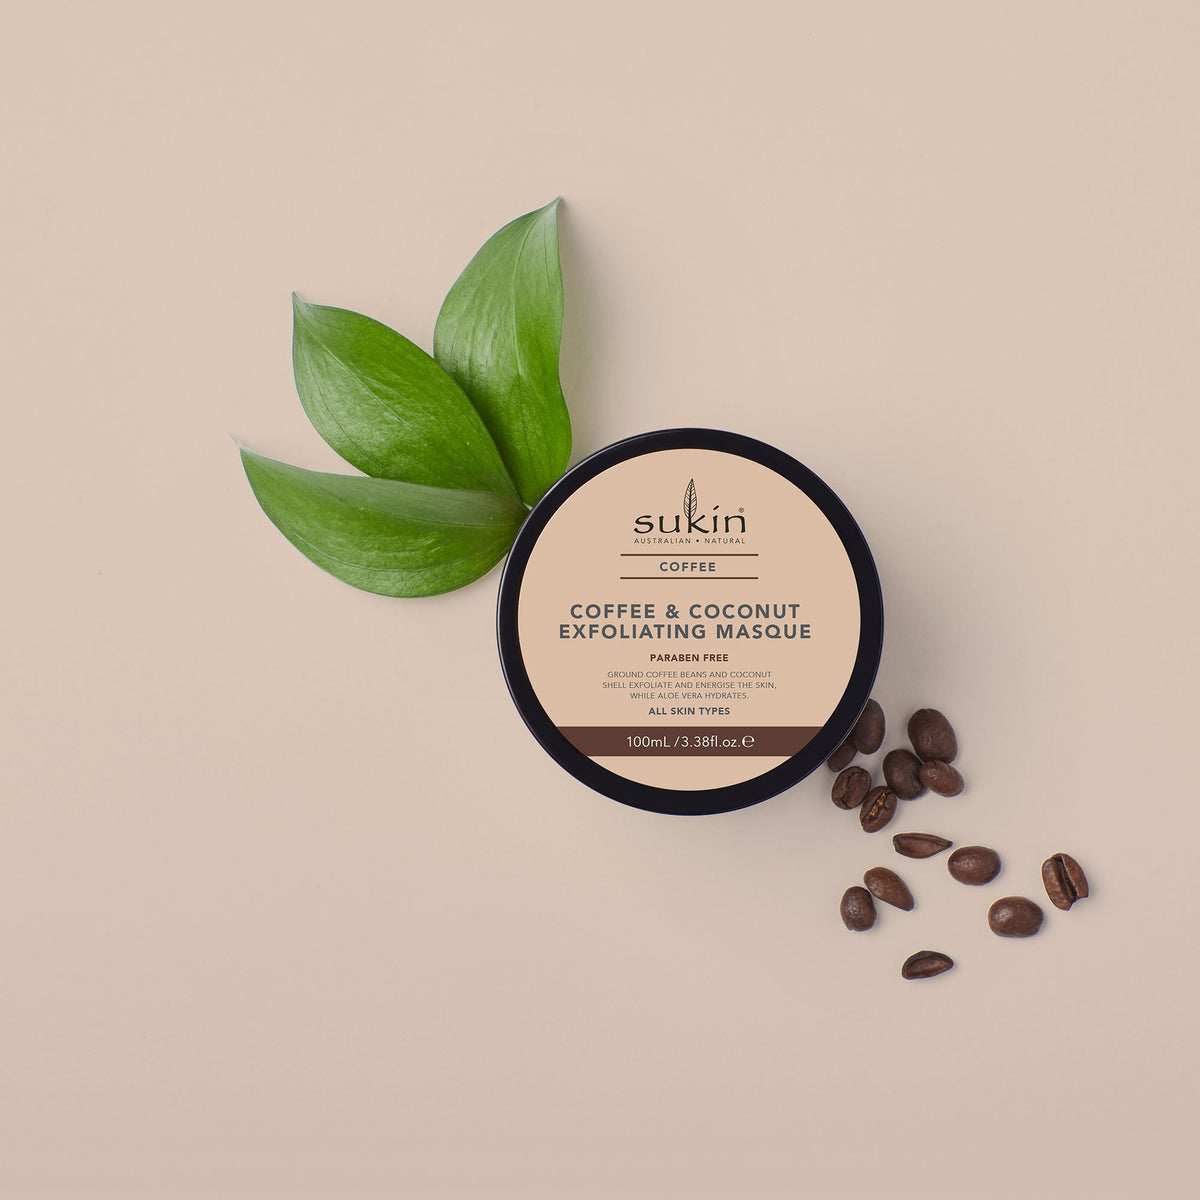 Coffee & Coconut Exfoliating Masque